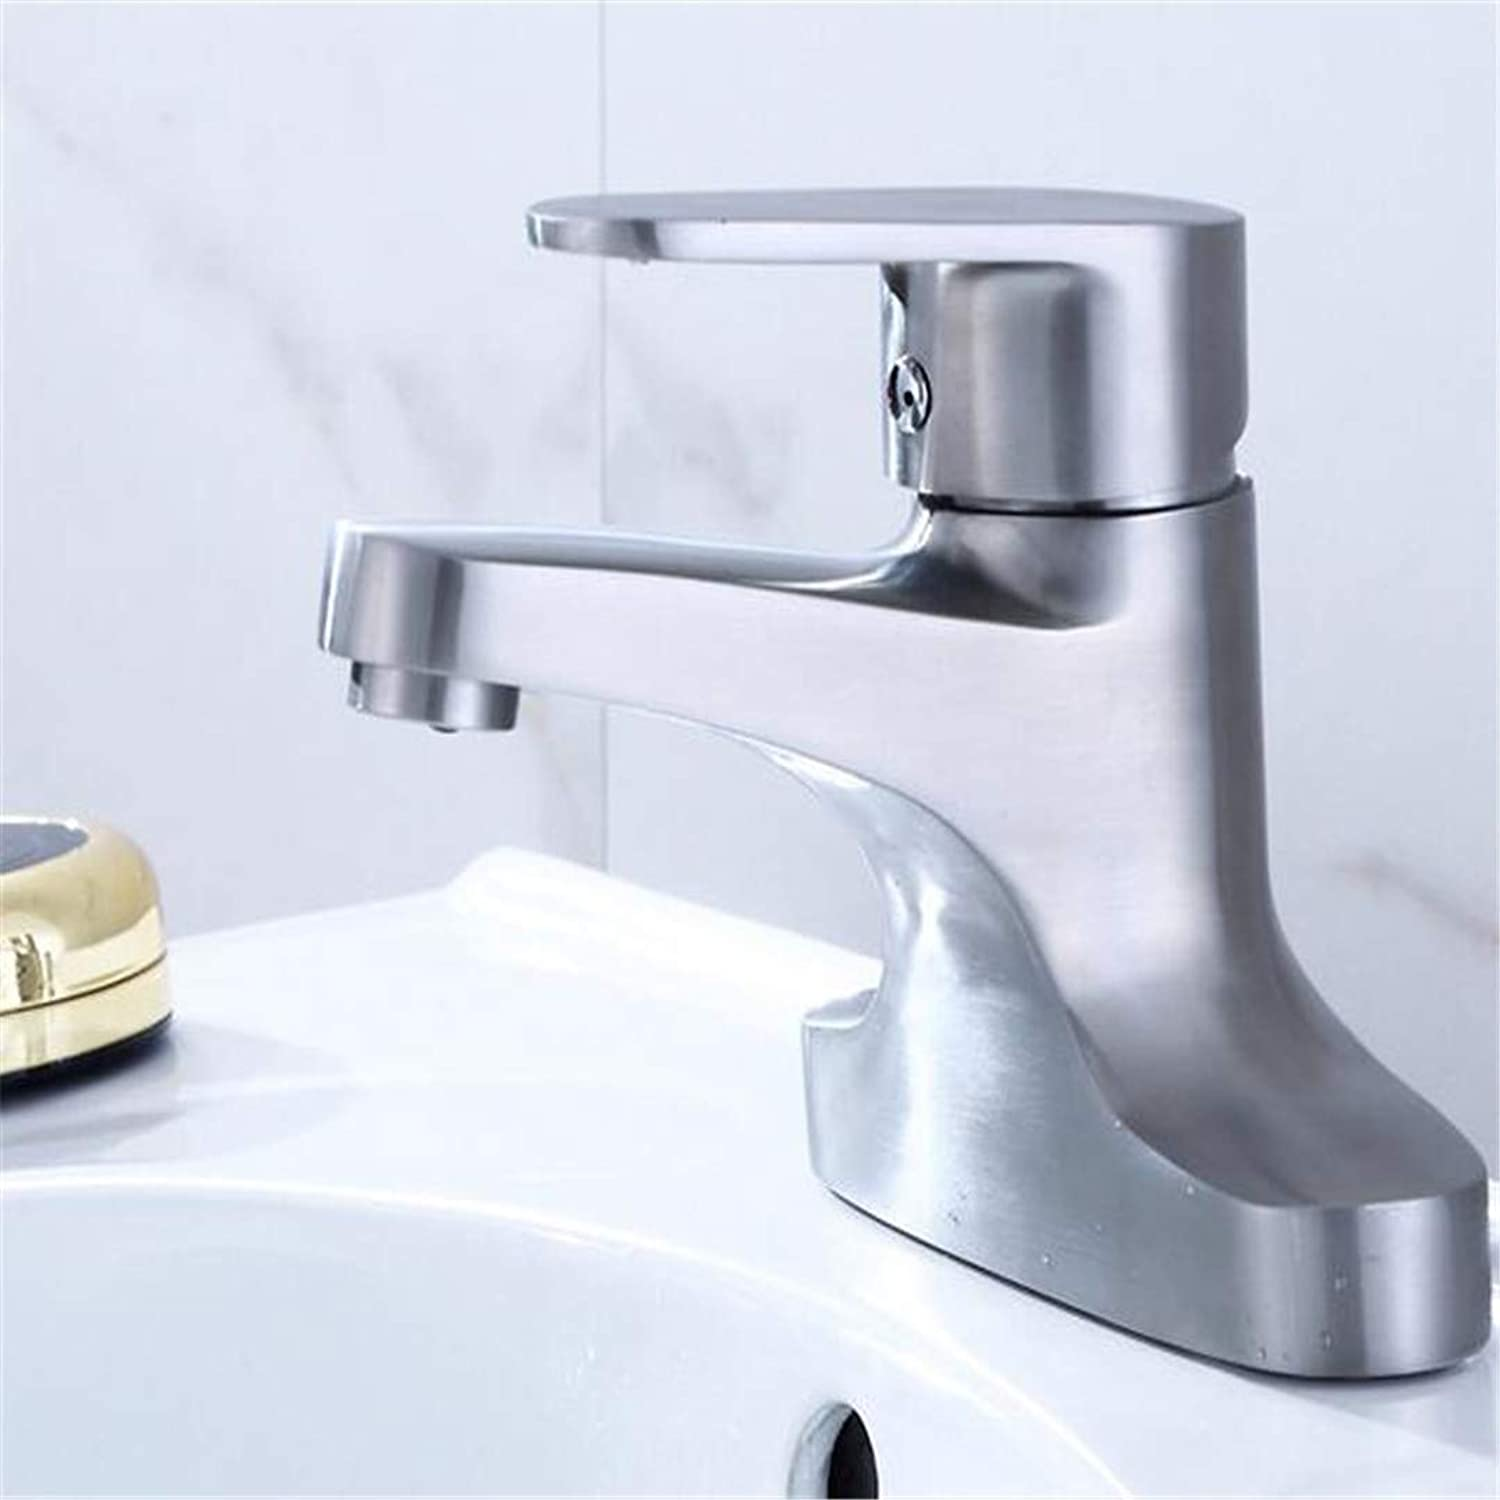 Bathroom Sink Bath Faucet Stainless Steel Double Hole Old Cold Hot Basin Faucet Two Joint Basin Faucet